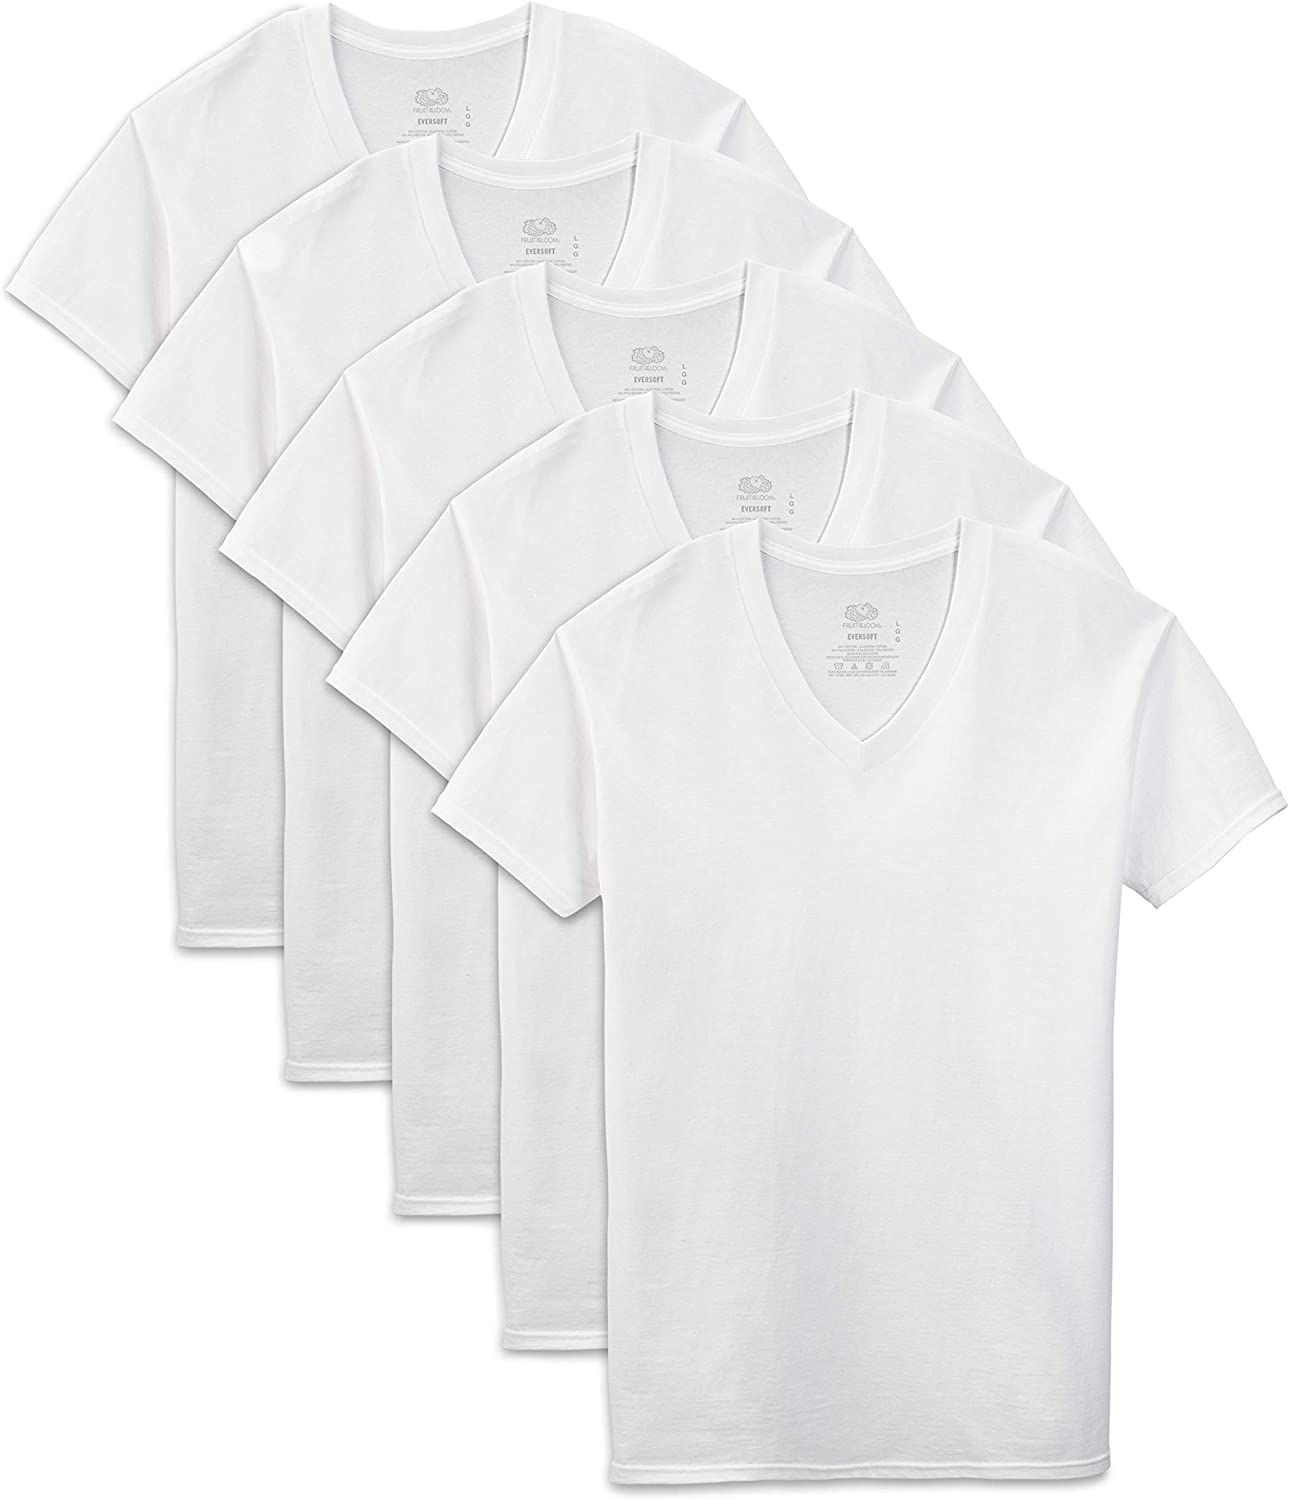 Fruit of the Loom Men's  Extended Sizes V-Neck T-Shirt, White, XXX-Large(Pack of 5)